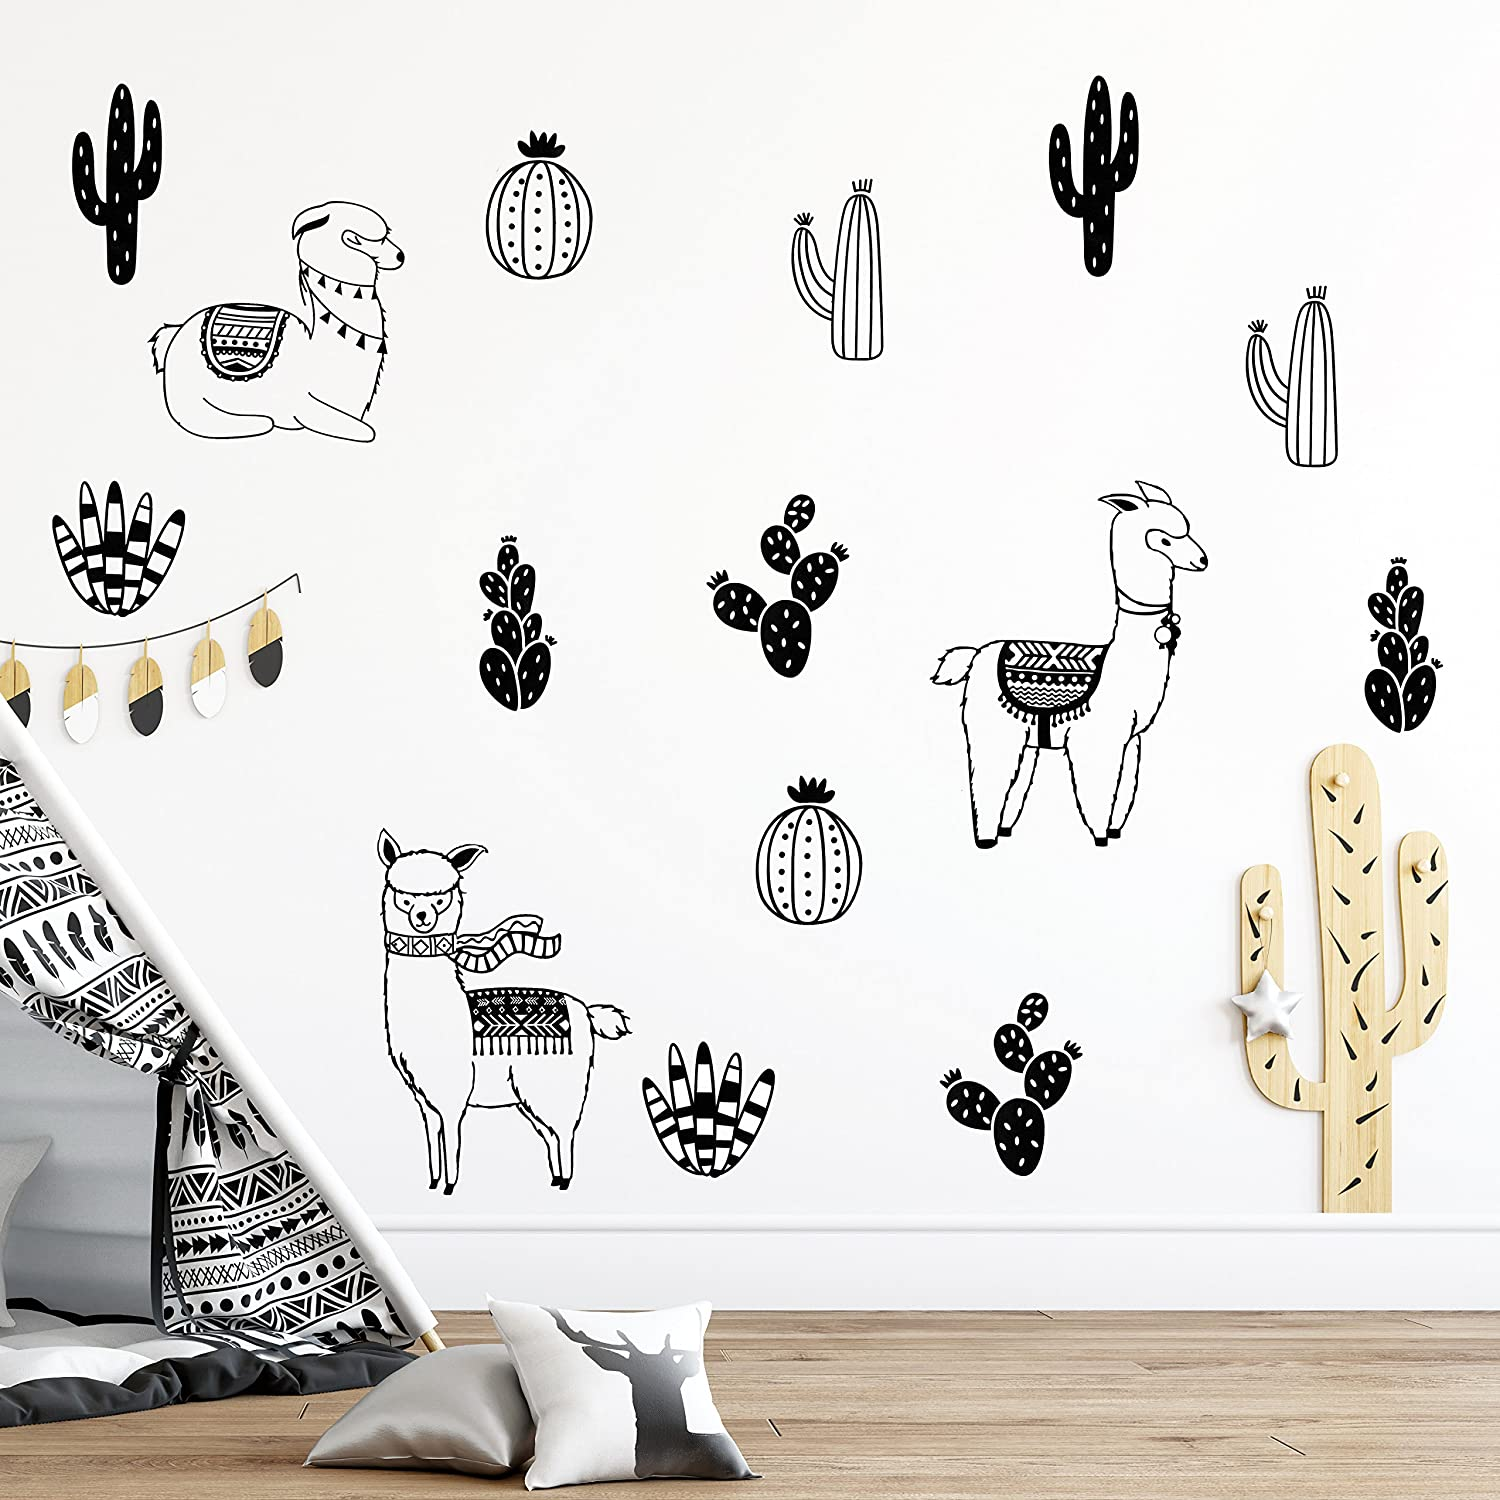 Alpacas Wall Decals Llama Decal Cactus Decals Alpaca Decals Nursery Decals